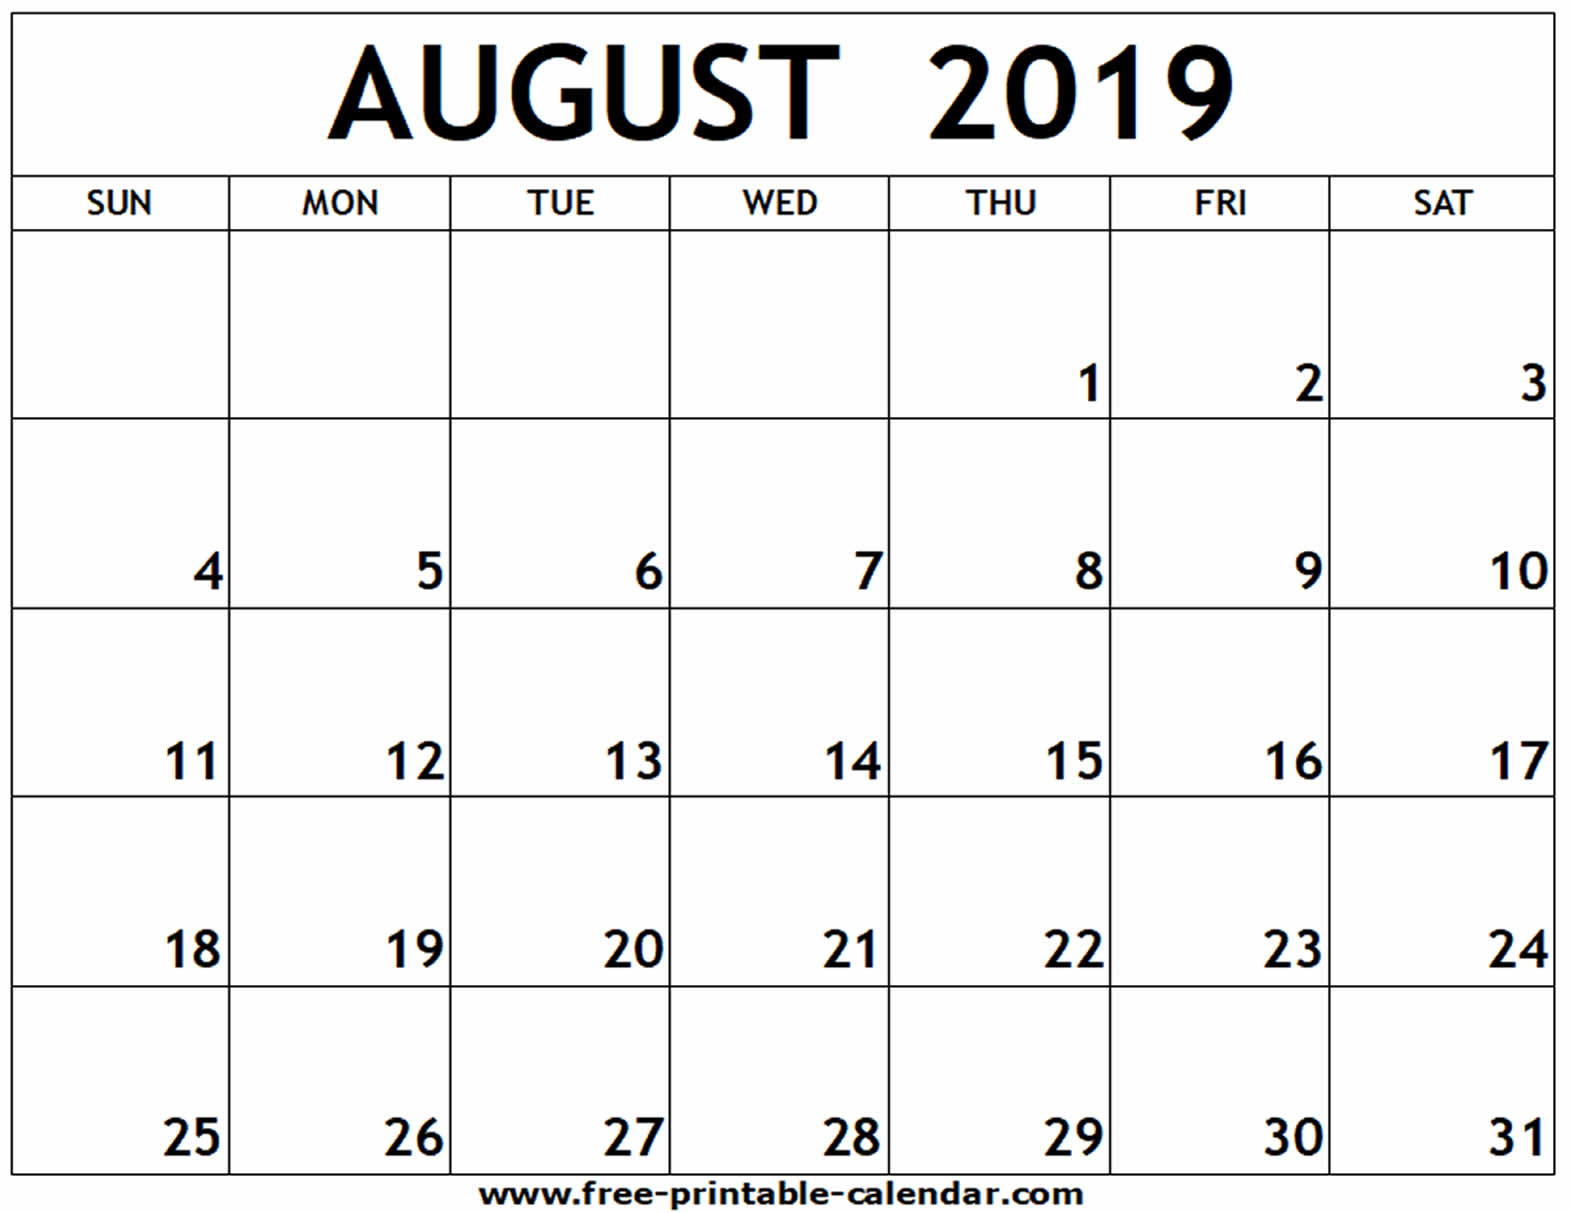 August 2019 Printable Calendar - Free-Printable-Calendar with August Blank Calendar Template